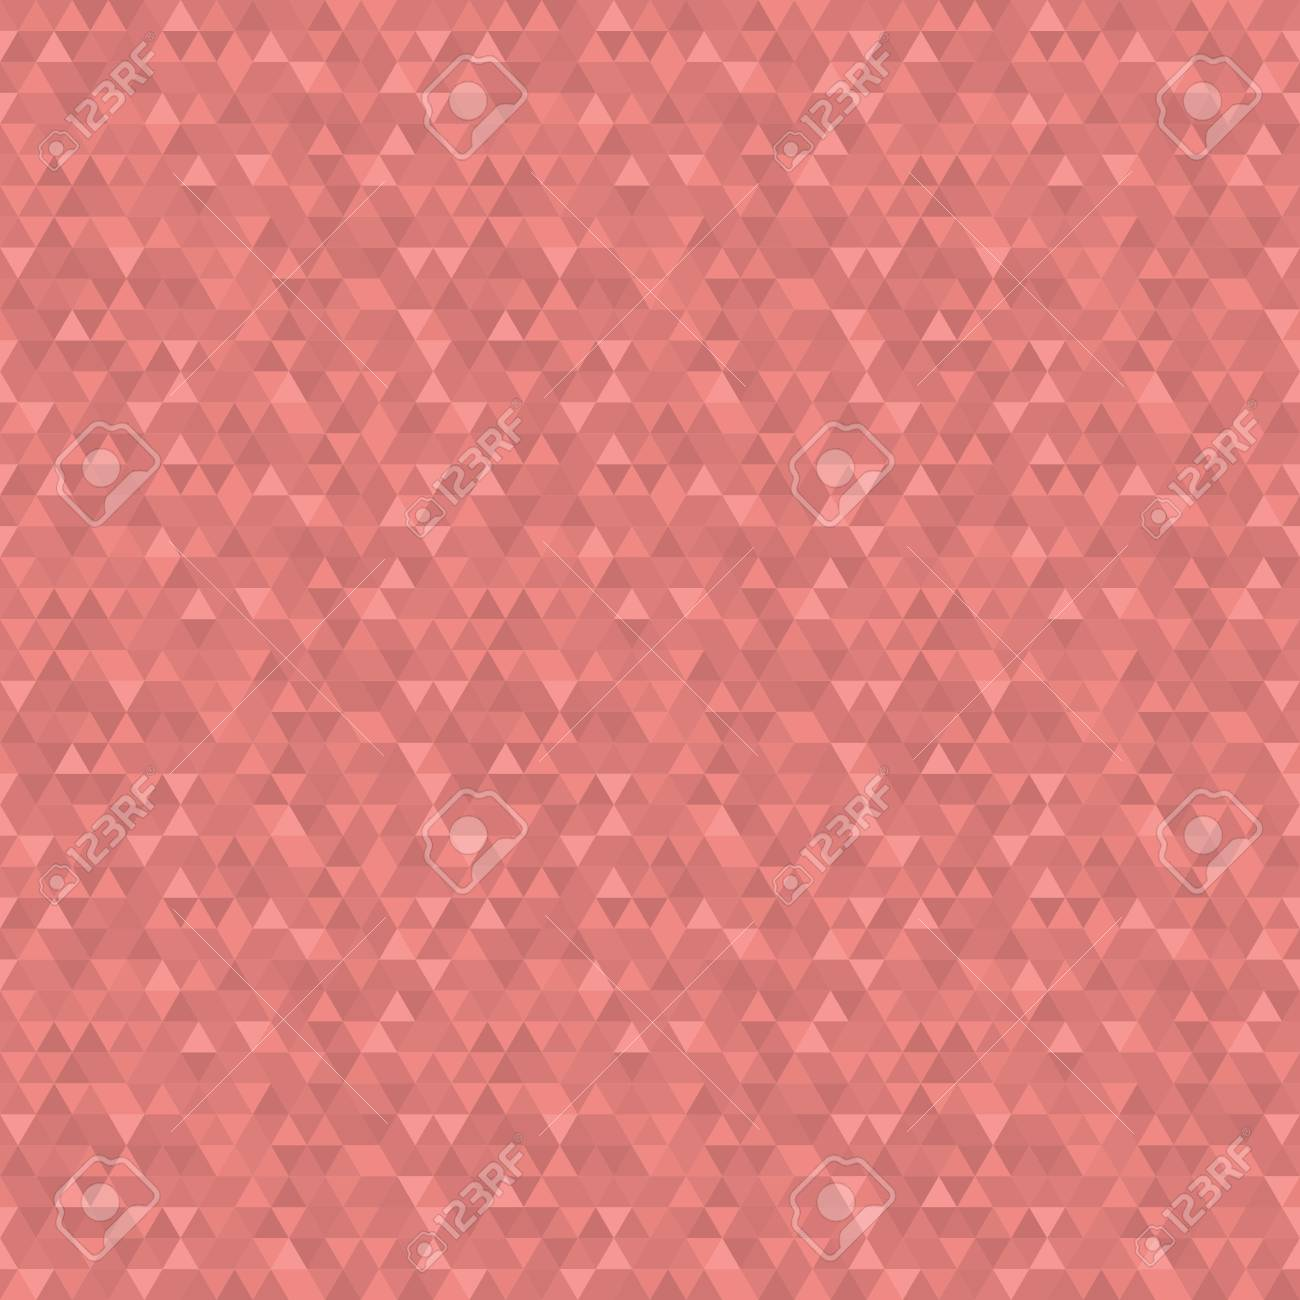 Geometric Texture With Dark And Light Red Triangles Seamless Abstract Background For Wallpapers Stock Photo